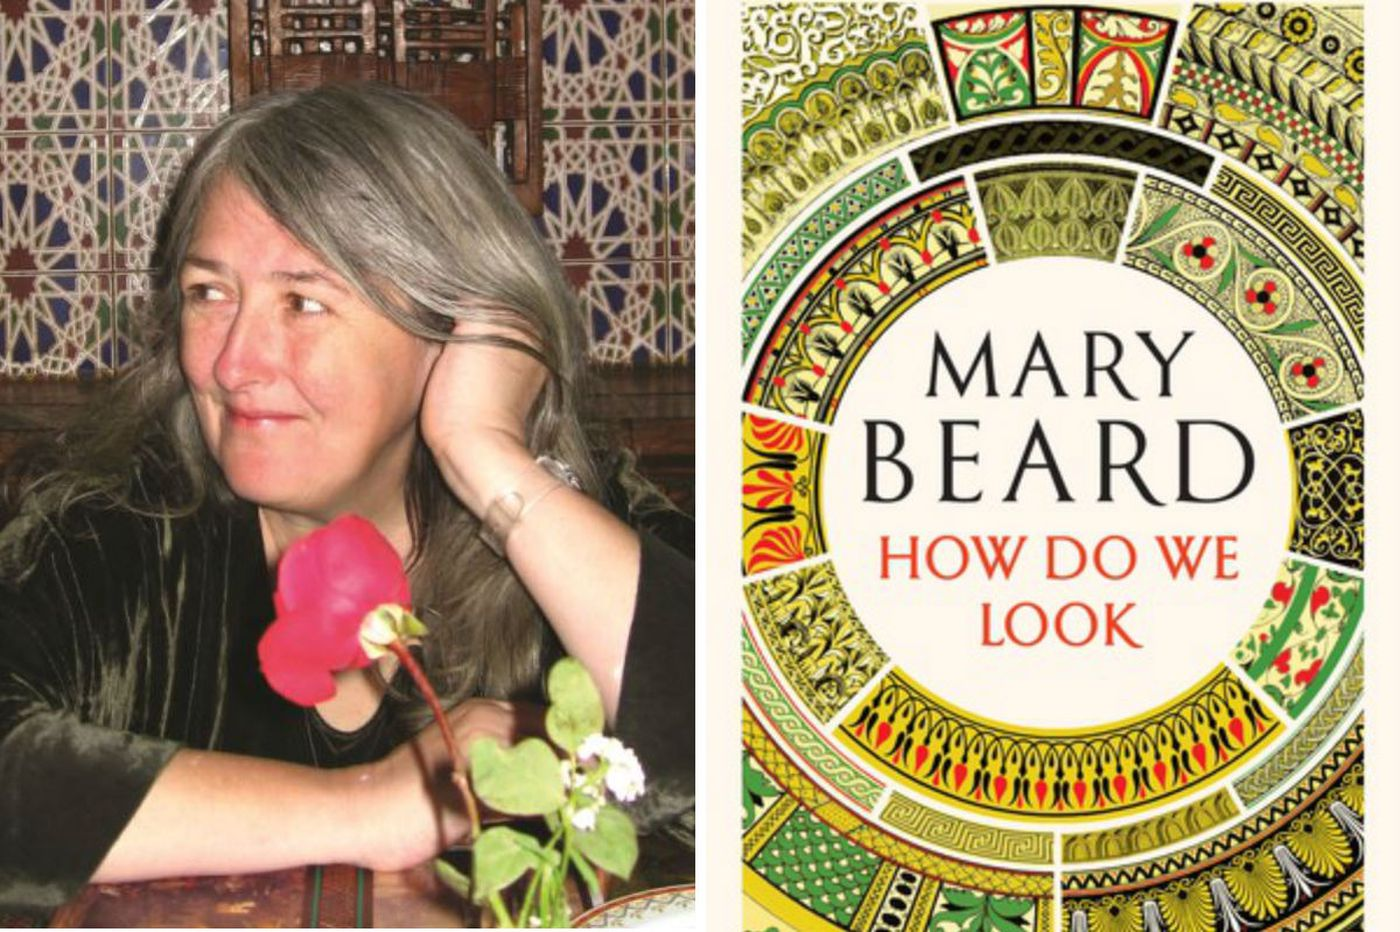 'How Do We Look' by Mary Beard: A refreshing tour of world art, touching God and humanity